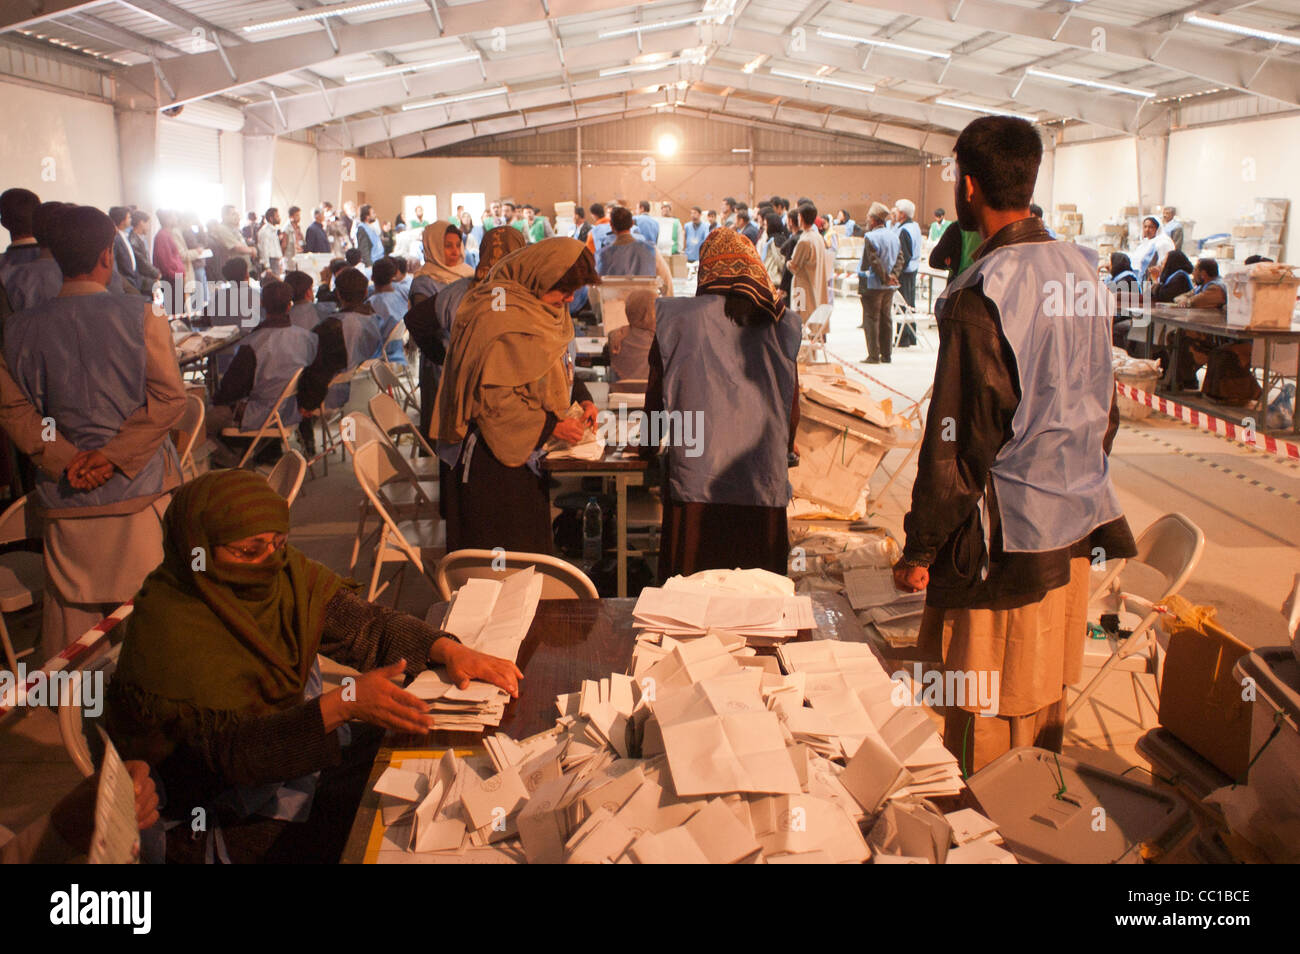 United Nations workers sort election ballots at a warehouse in Kabul, Afghanistan - Stock Image